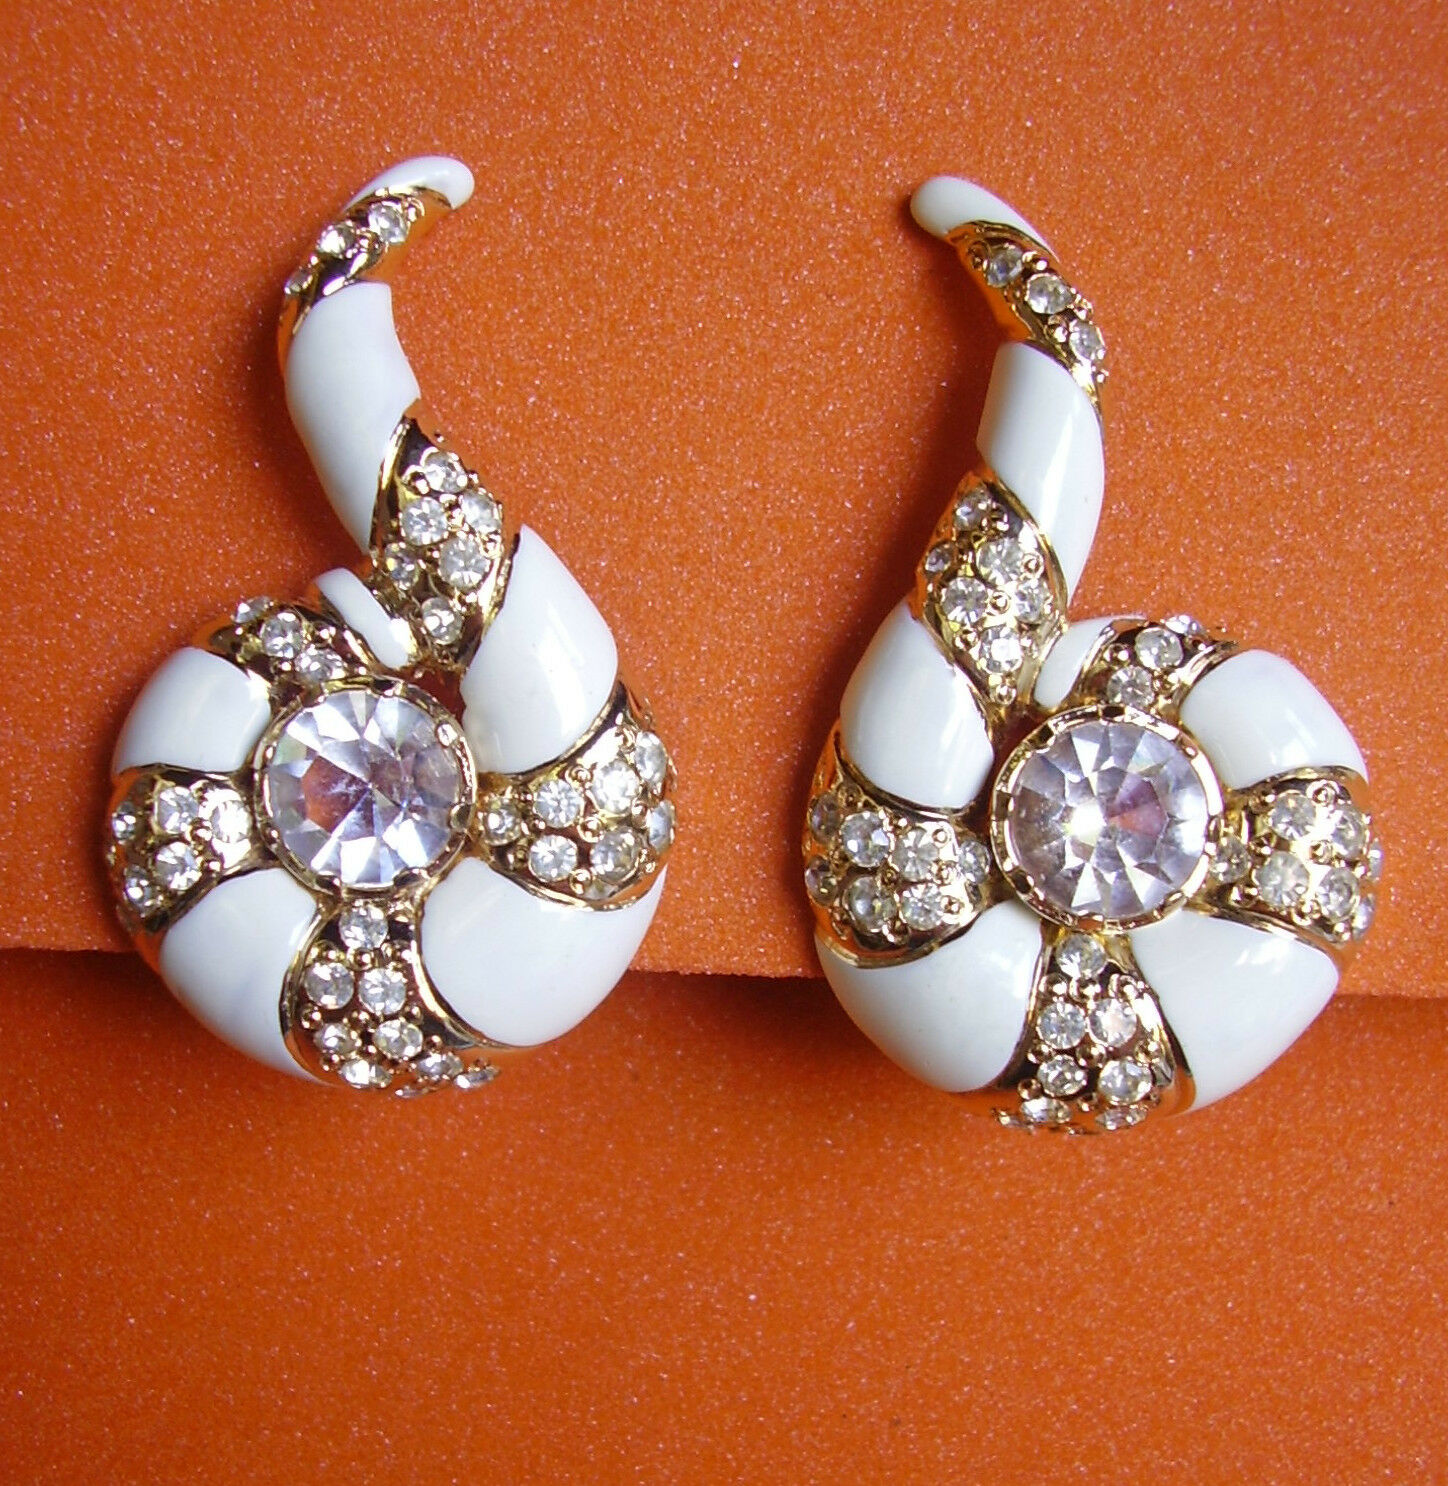 525     VALENTINO   BOUCLES D'OREILLE CLIPS  SPIRALE  EMAIL white